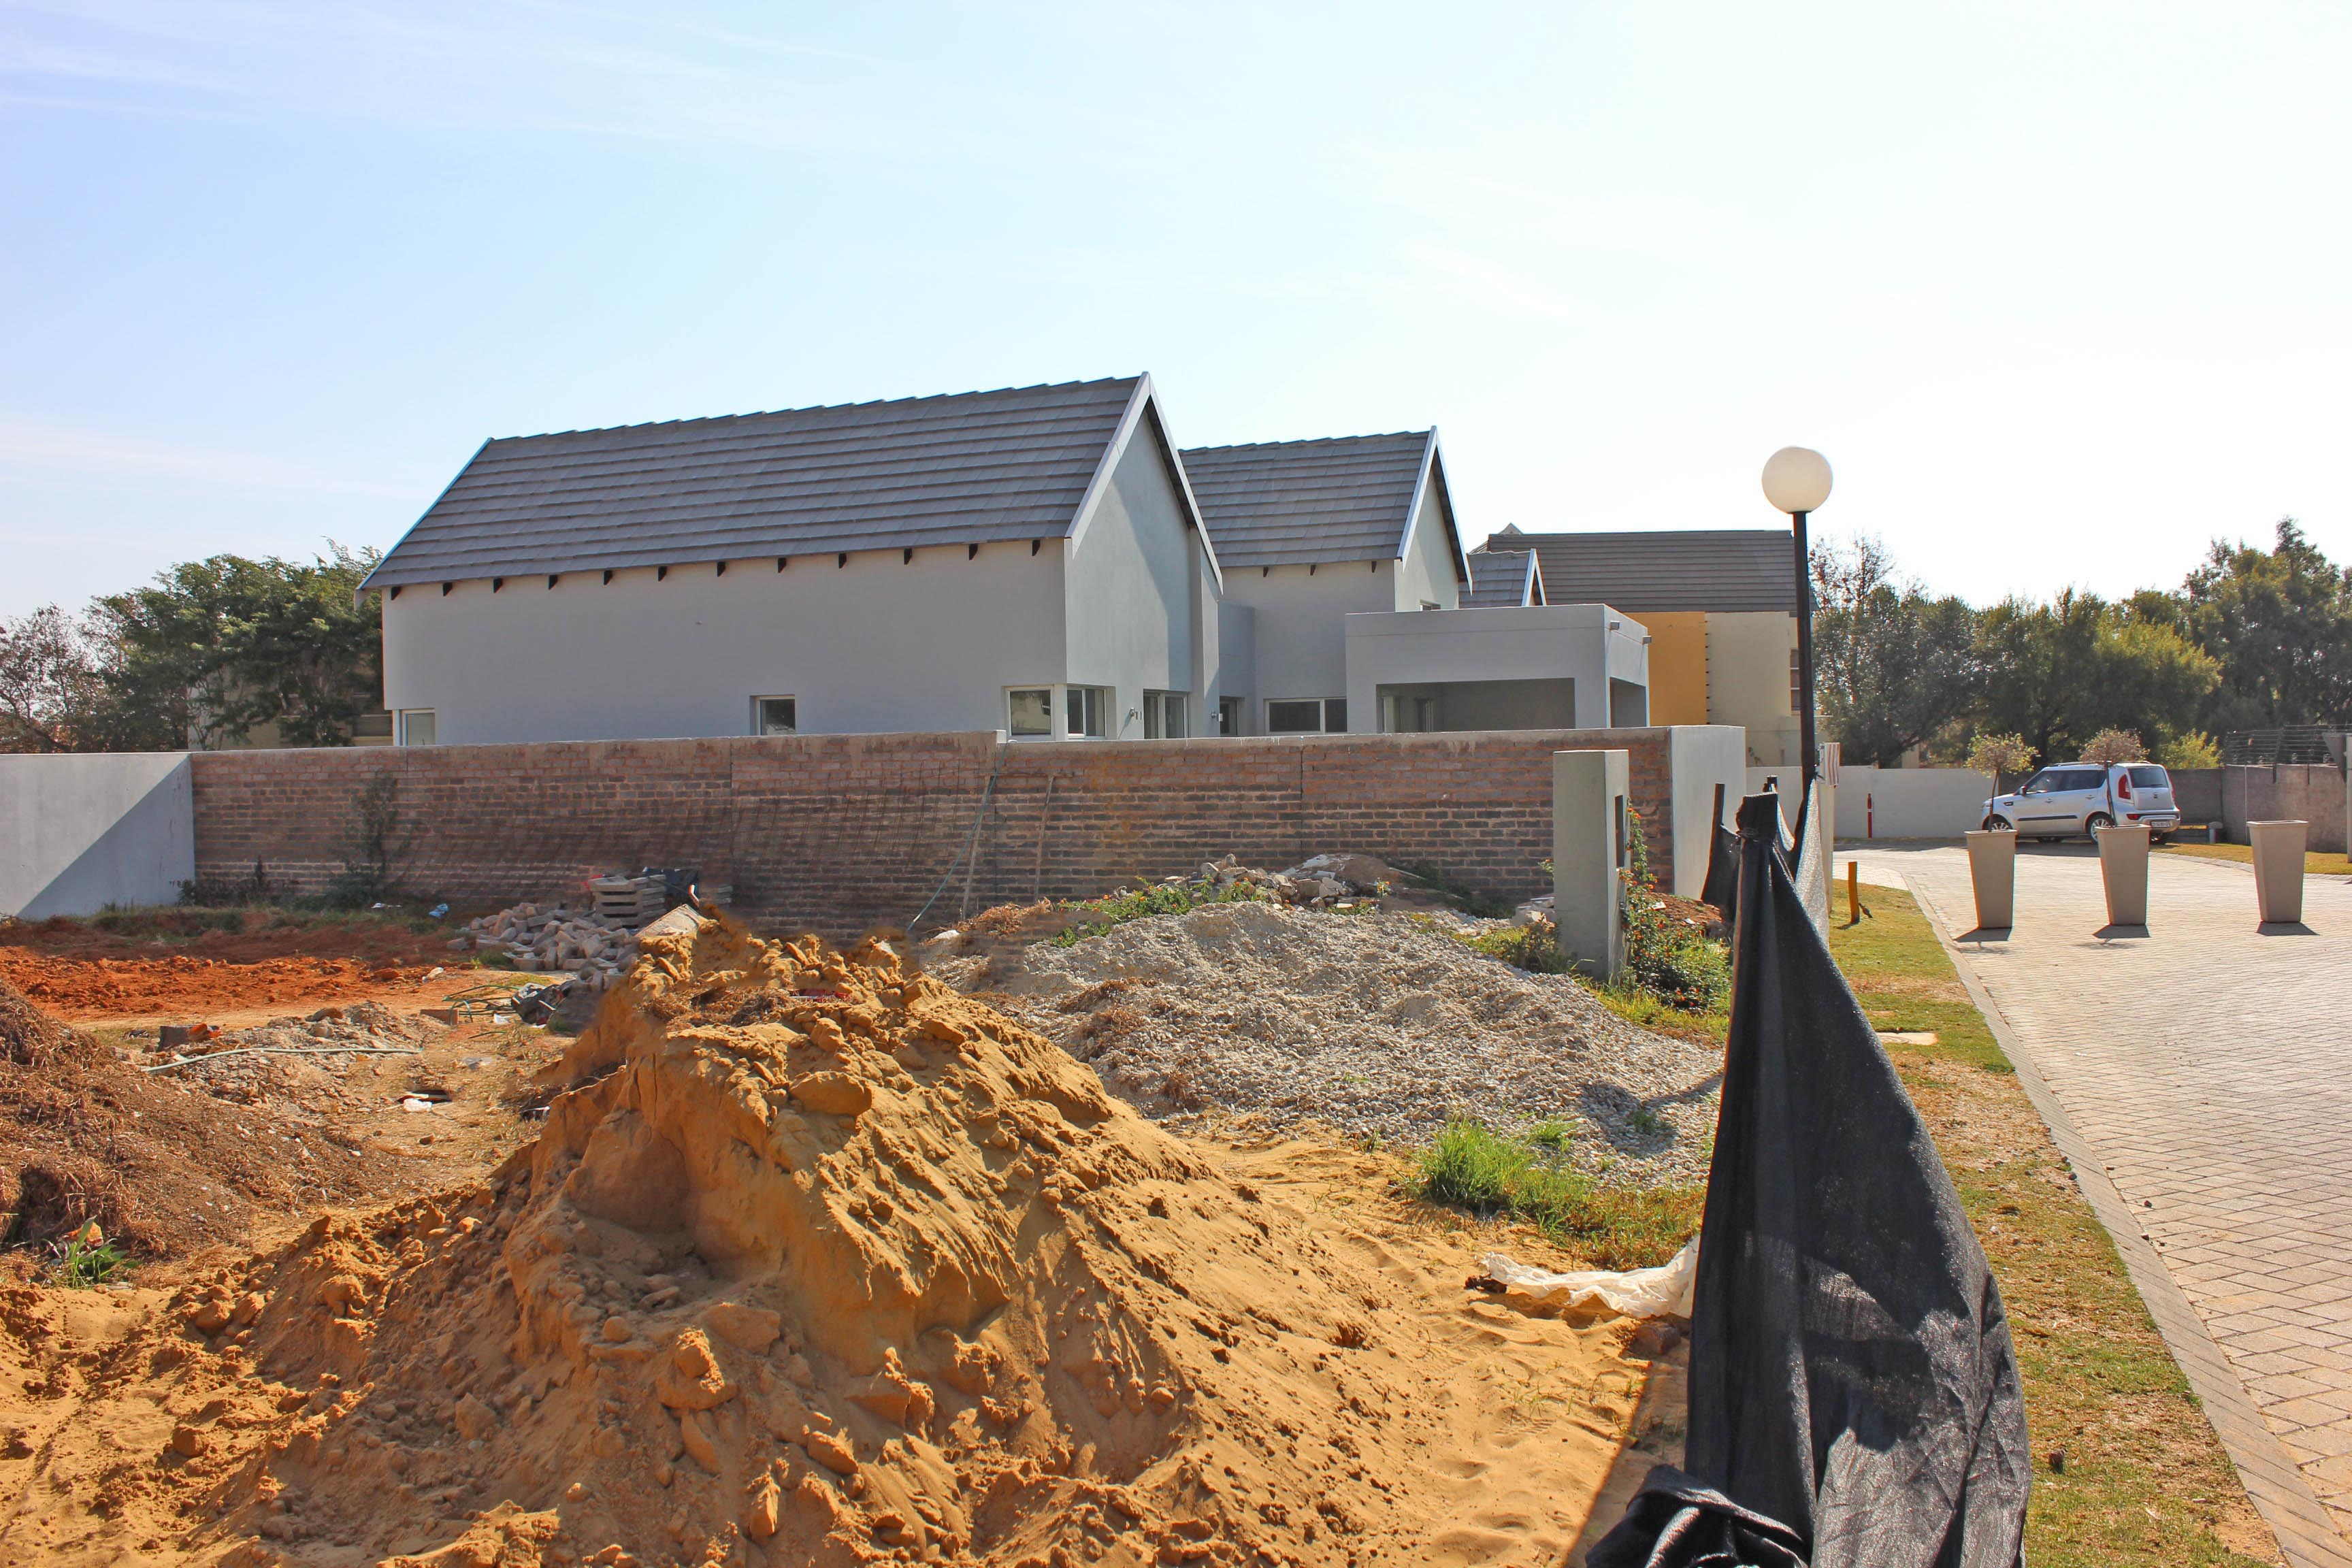 3 Bedroom Townhouse for sale in North Riding ENT0075308 : photo#19